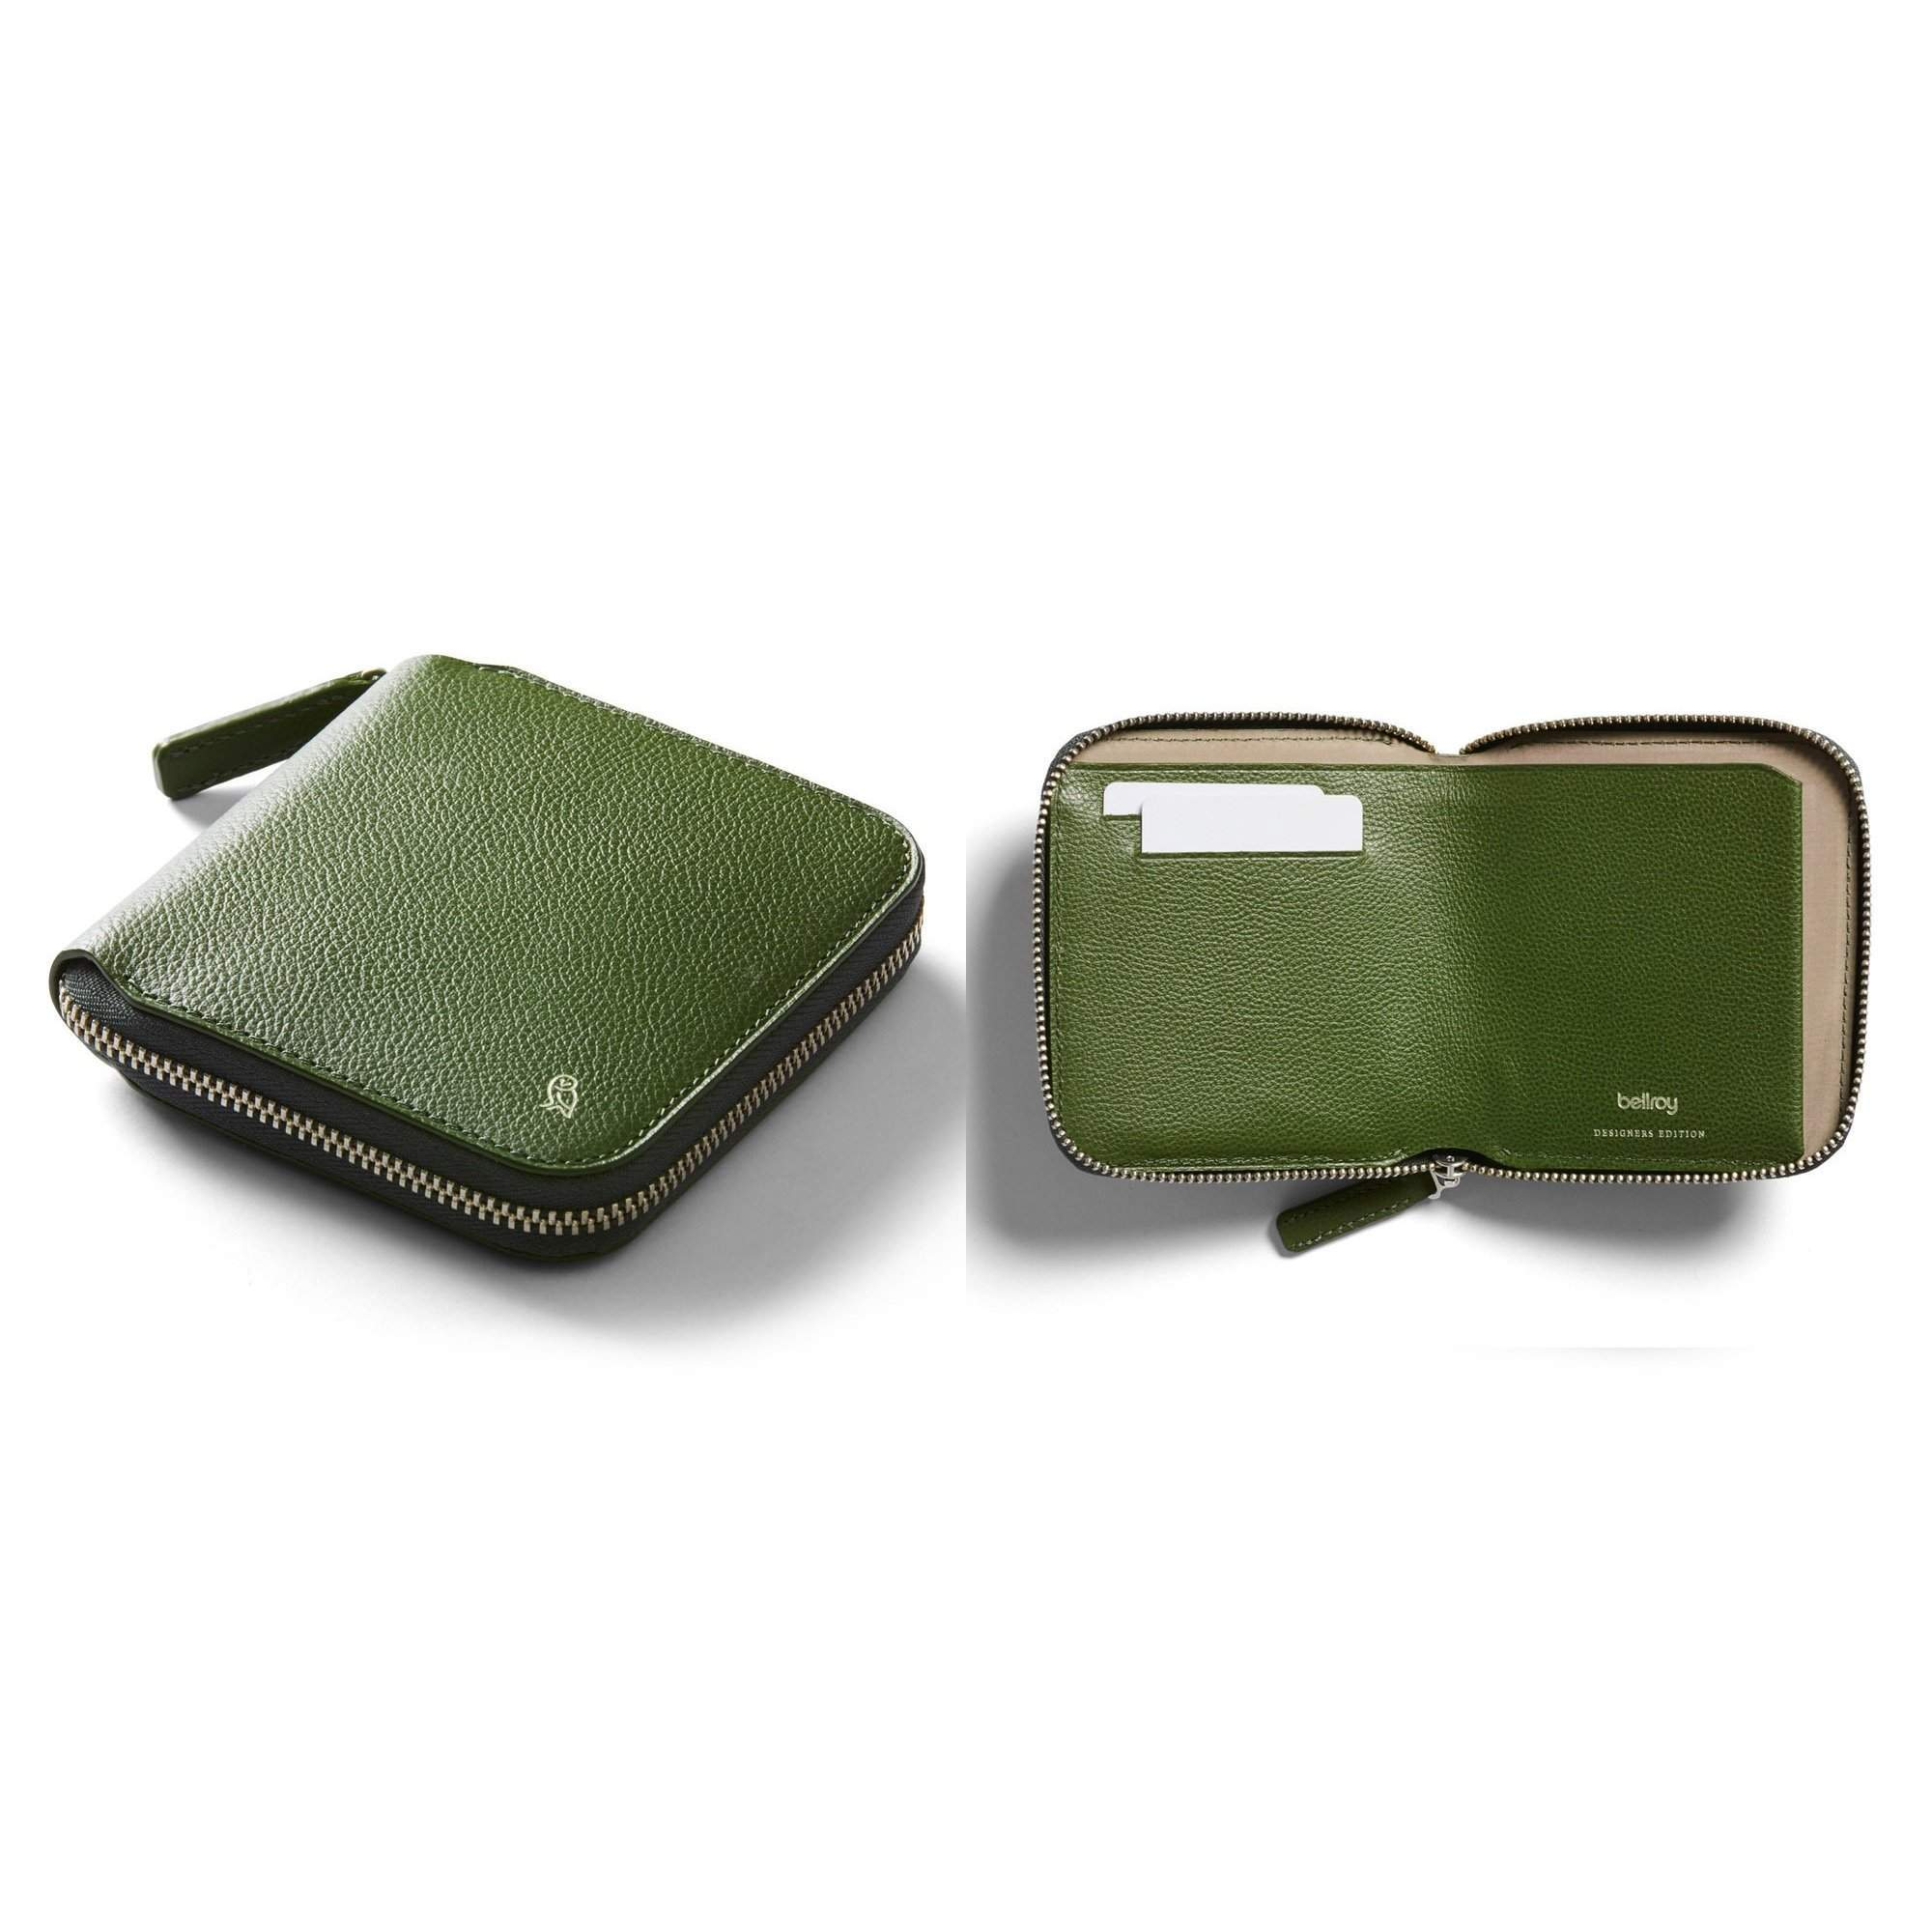 77b1073188 Bellroy Designer's Edition Leather Zip Wallet